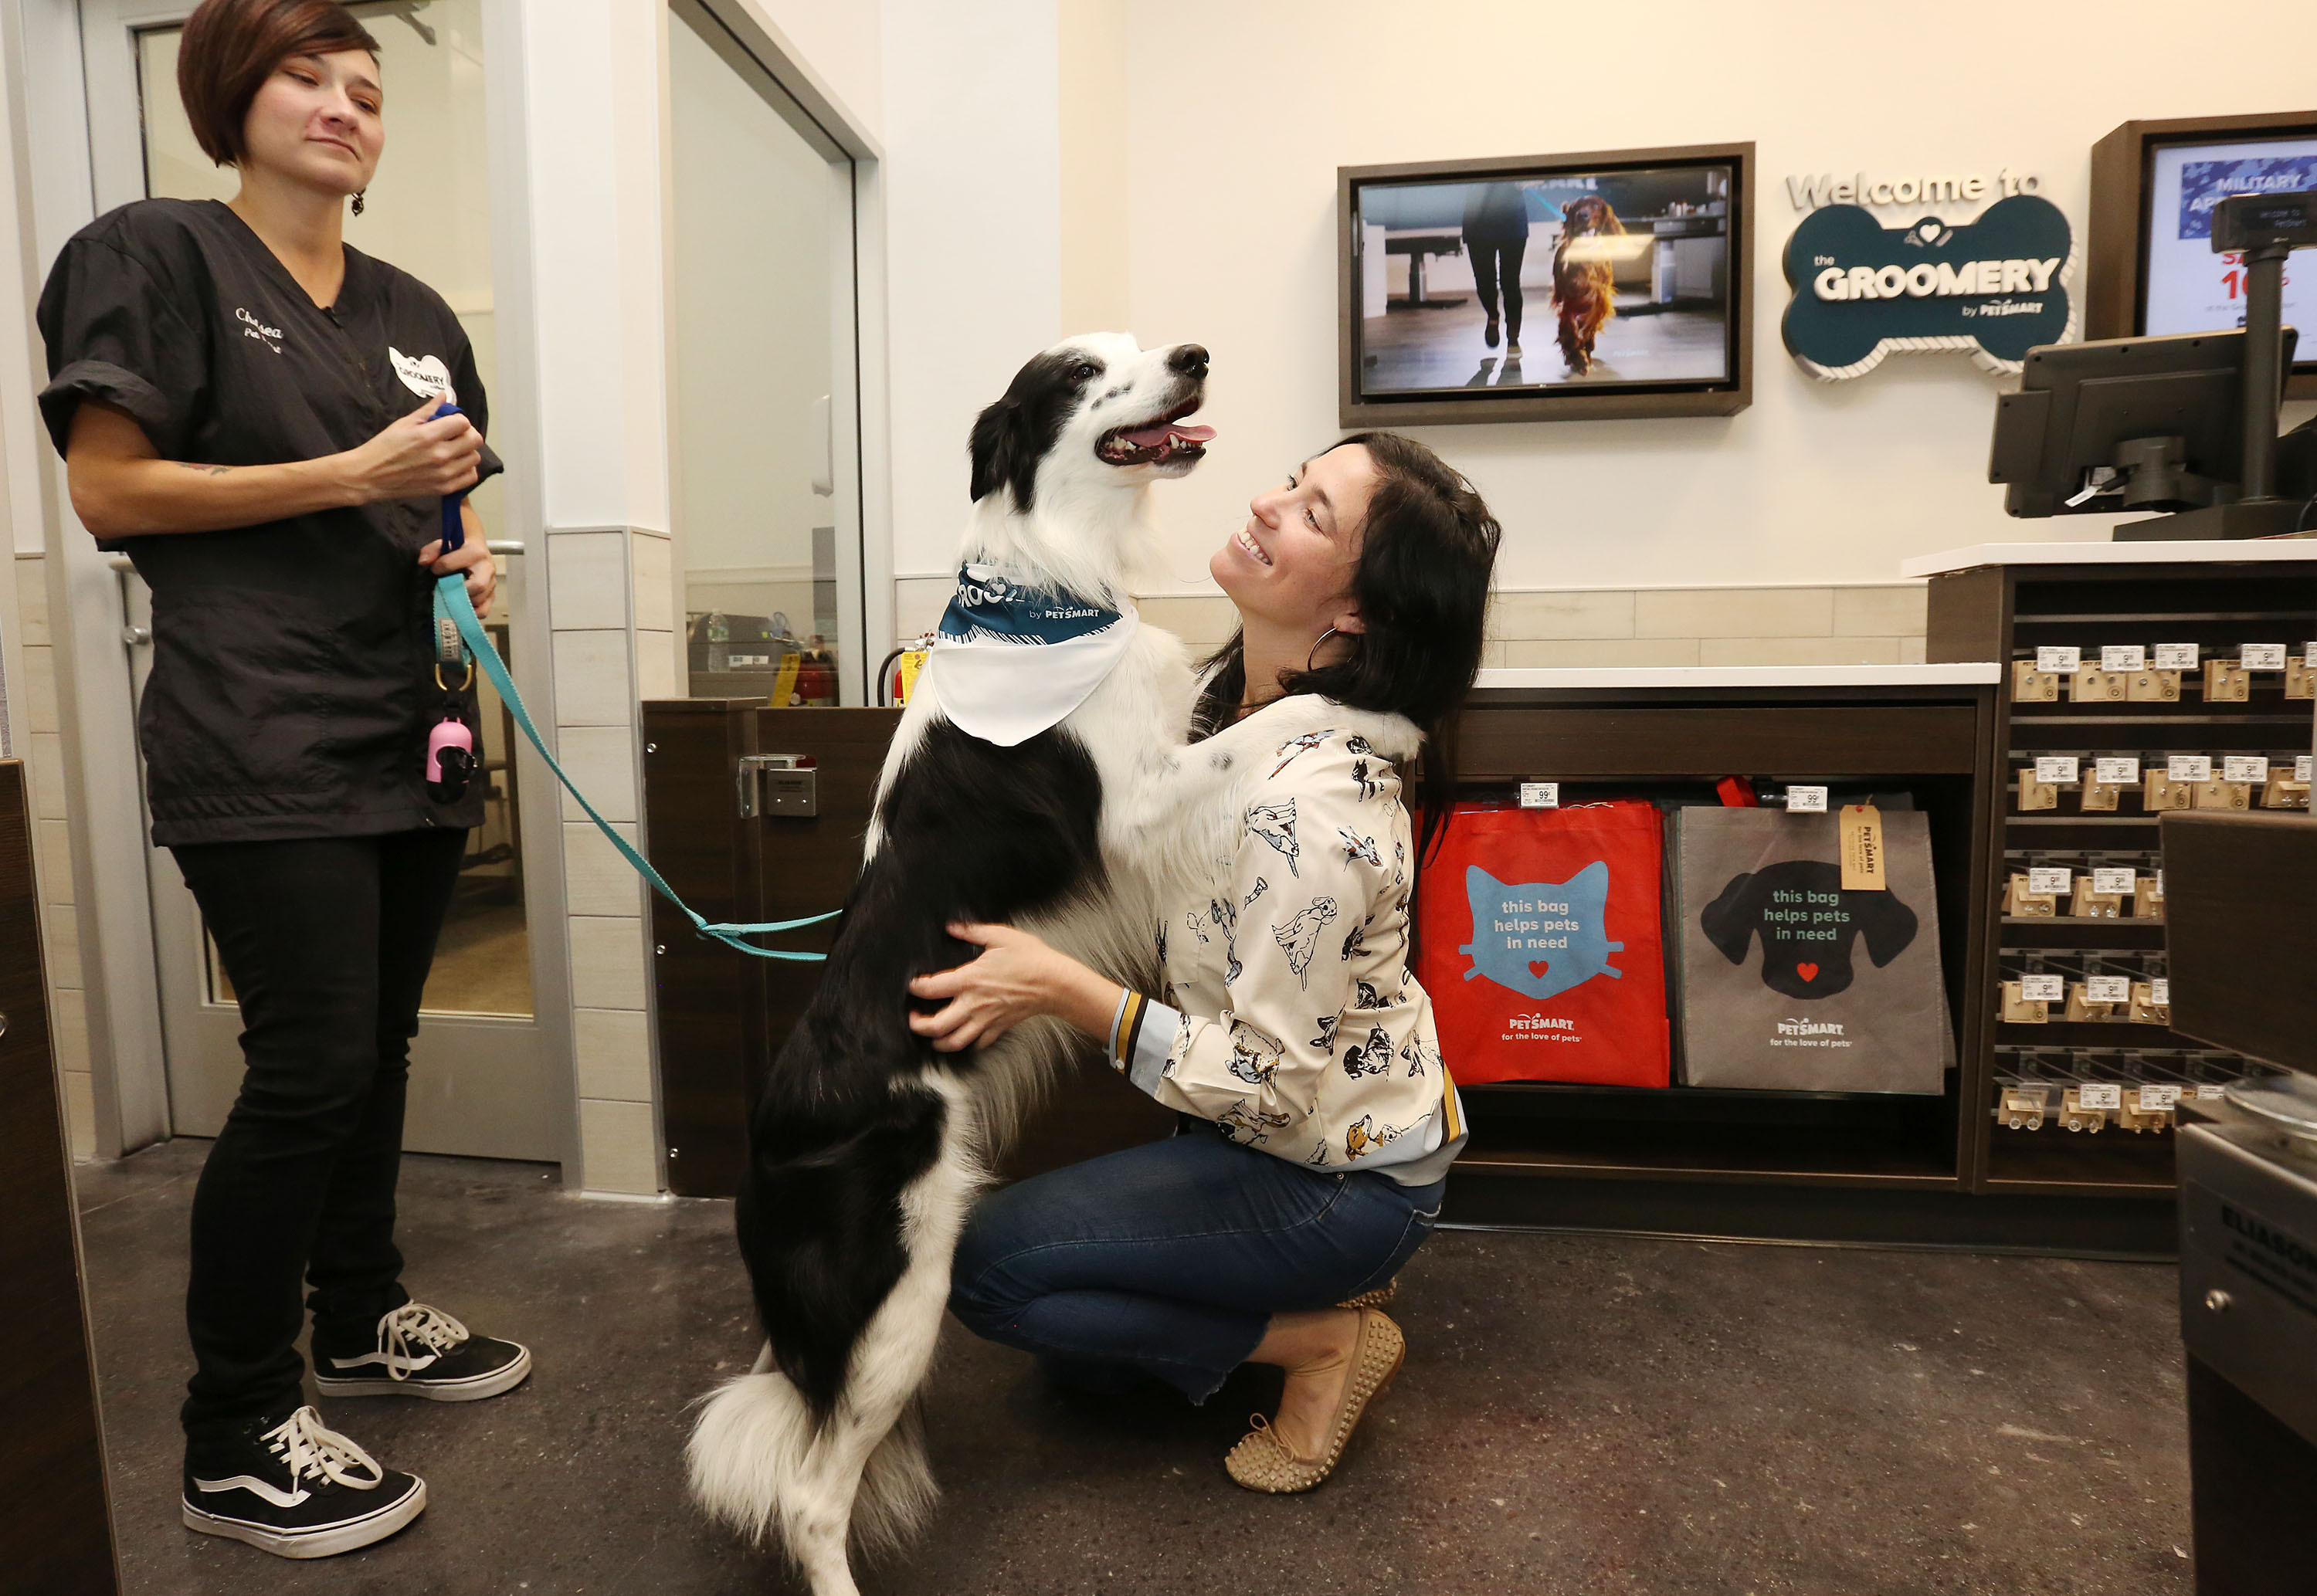 PetSmart Takes Pet Pampering To A New Level With The Launch Of Groomery By PetSmartTM